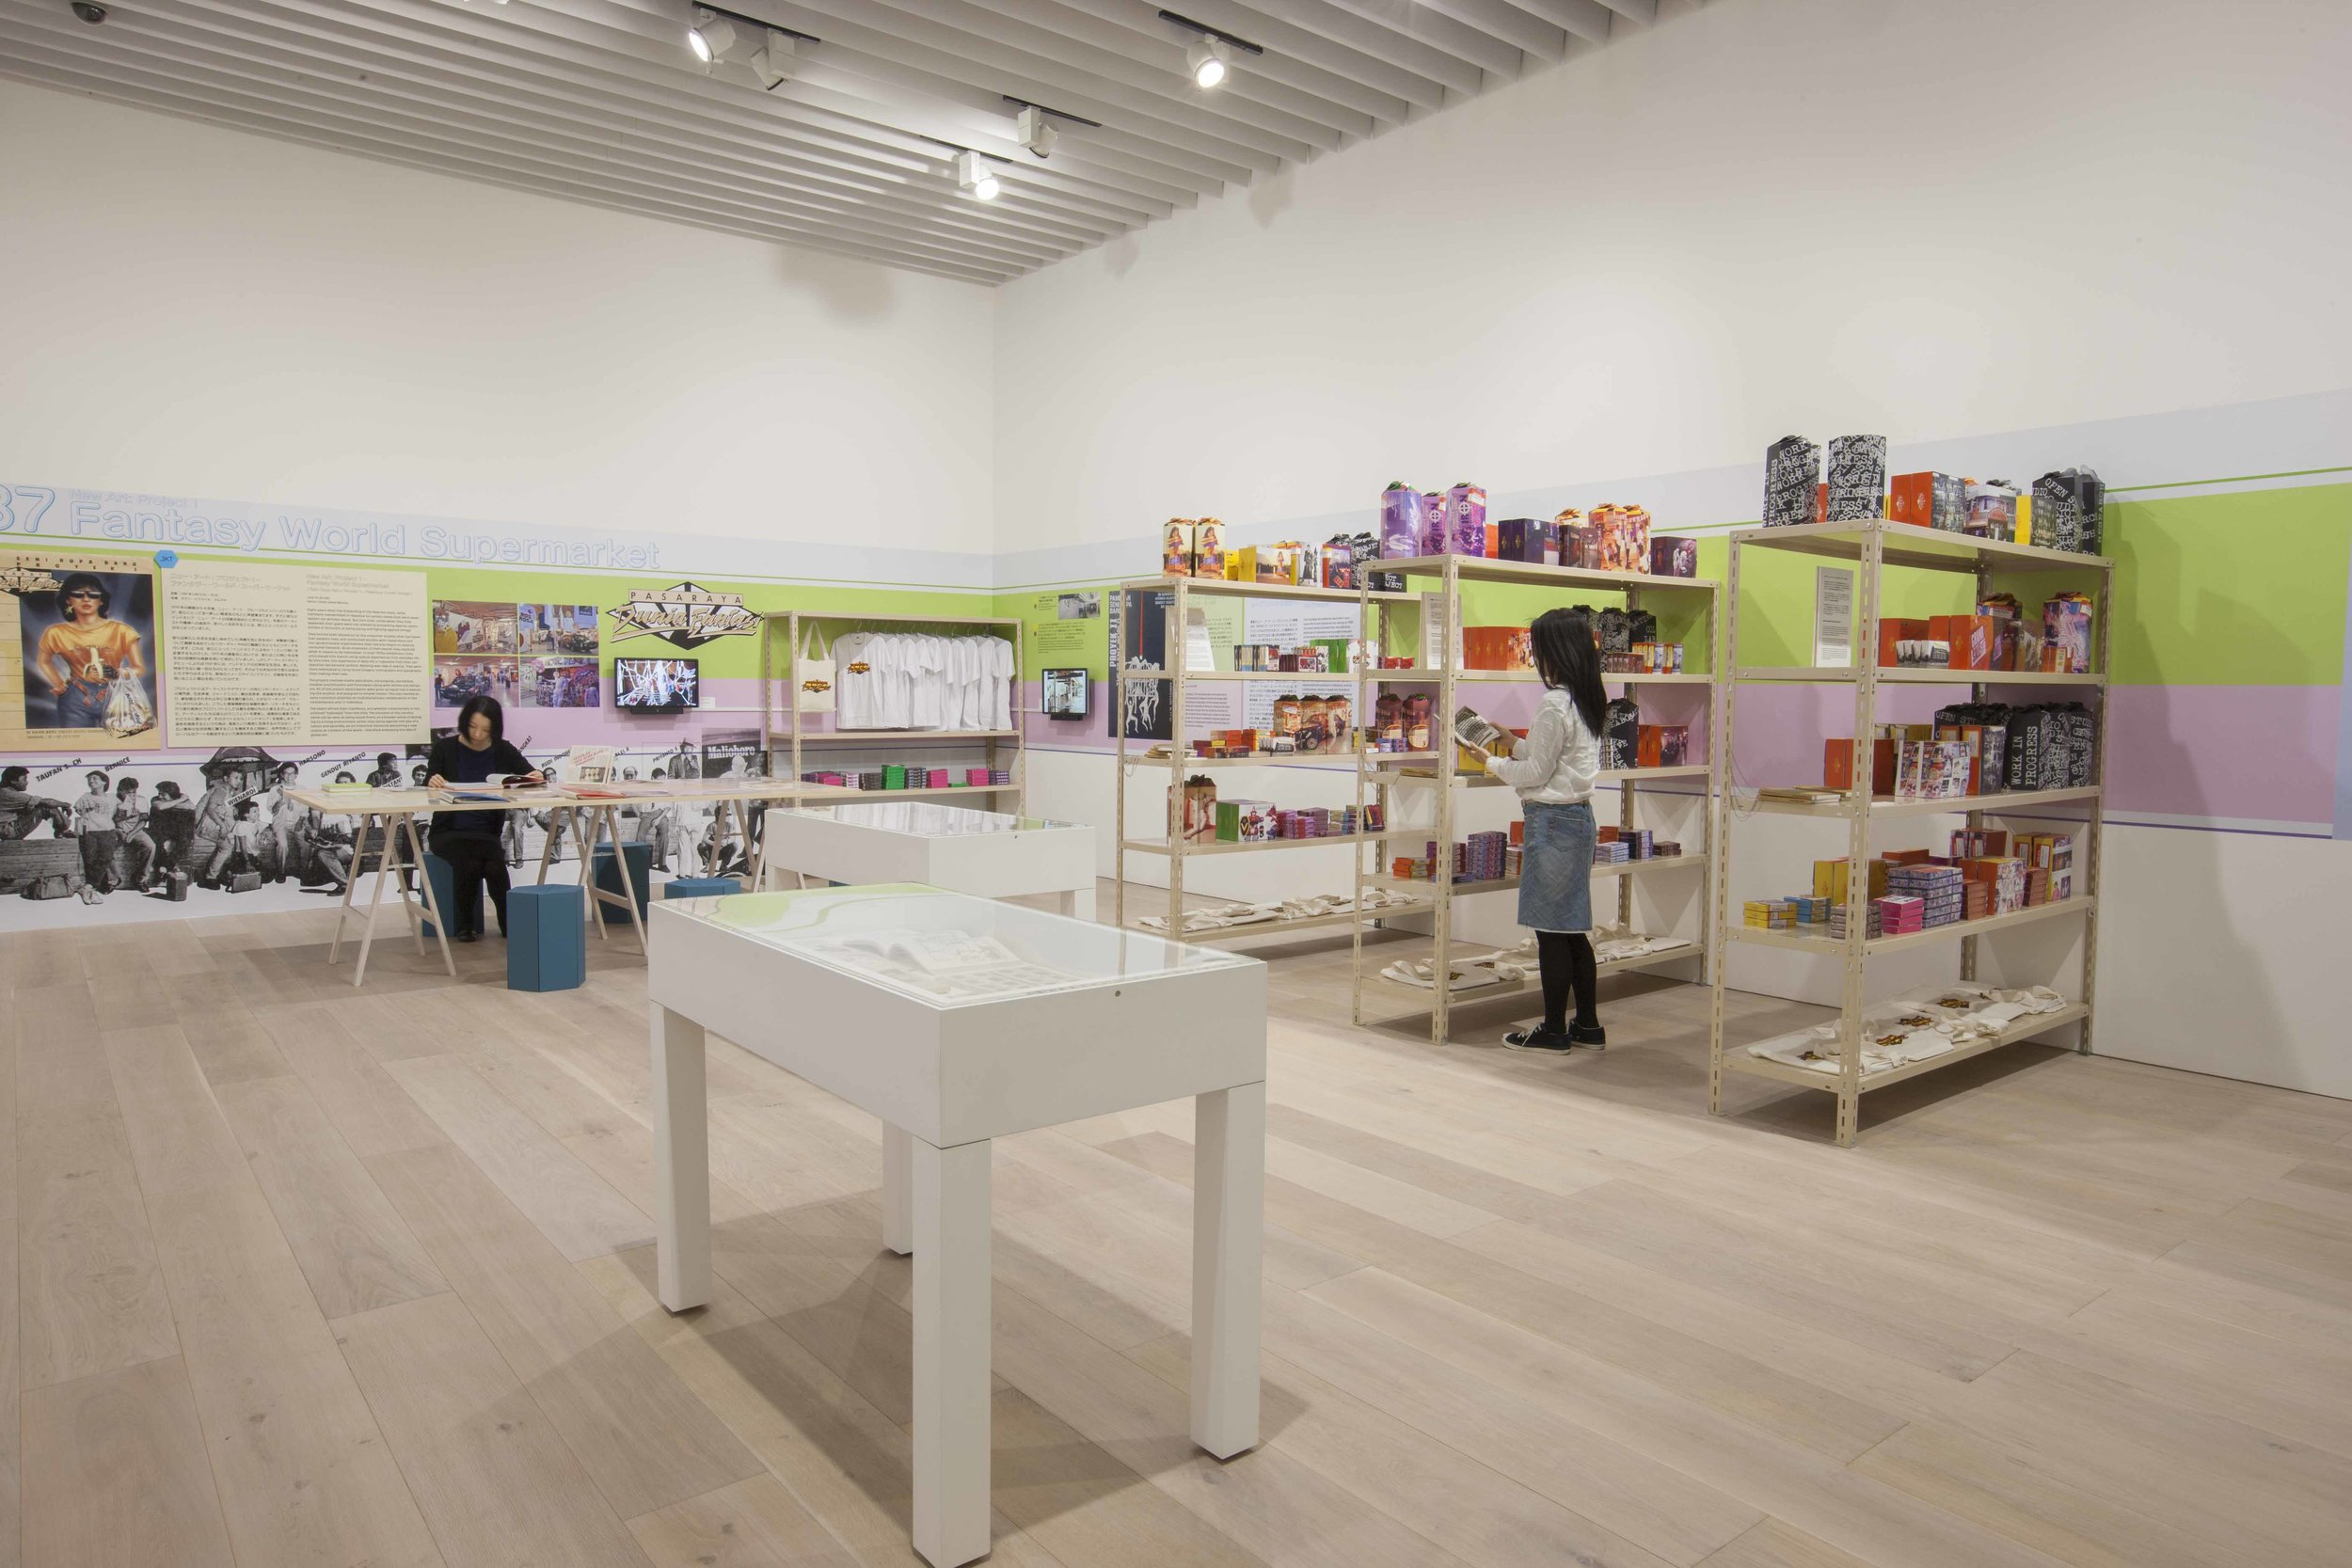 'Fantasy World Supermarket', 2016, exhibition installation view. Image courtesy of Mori Art Museum.